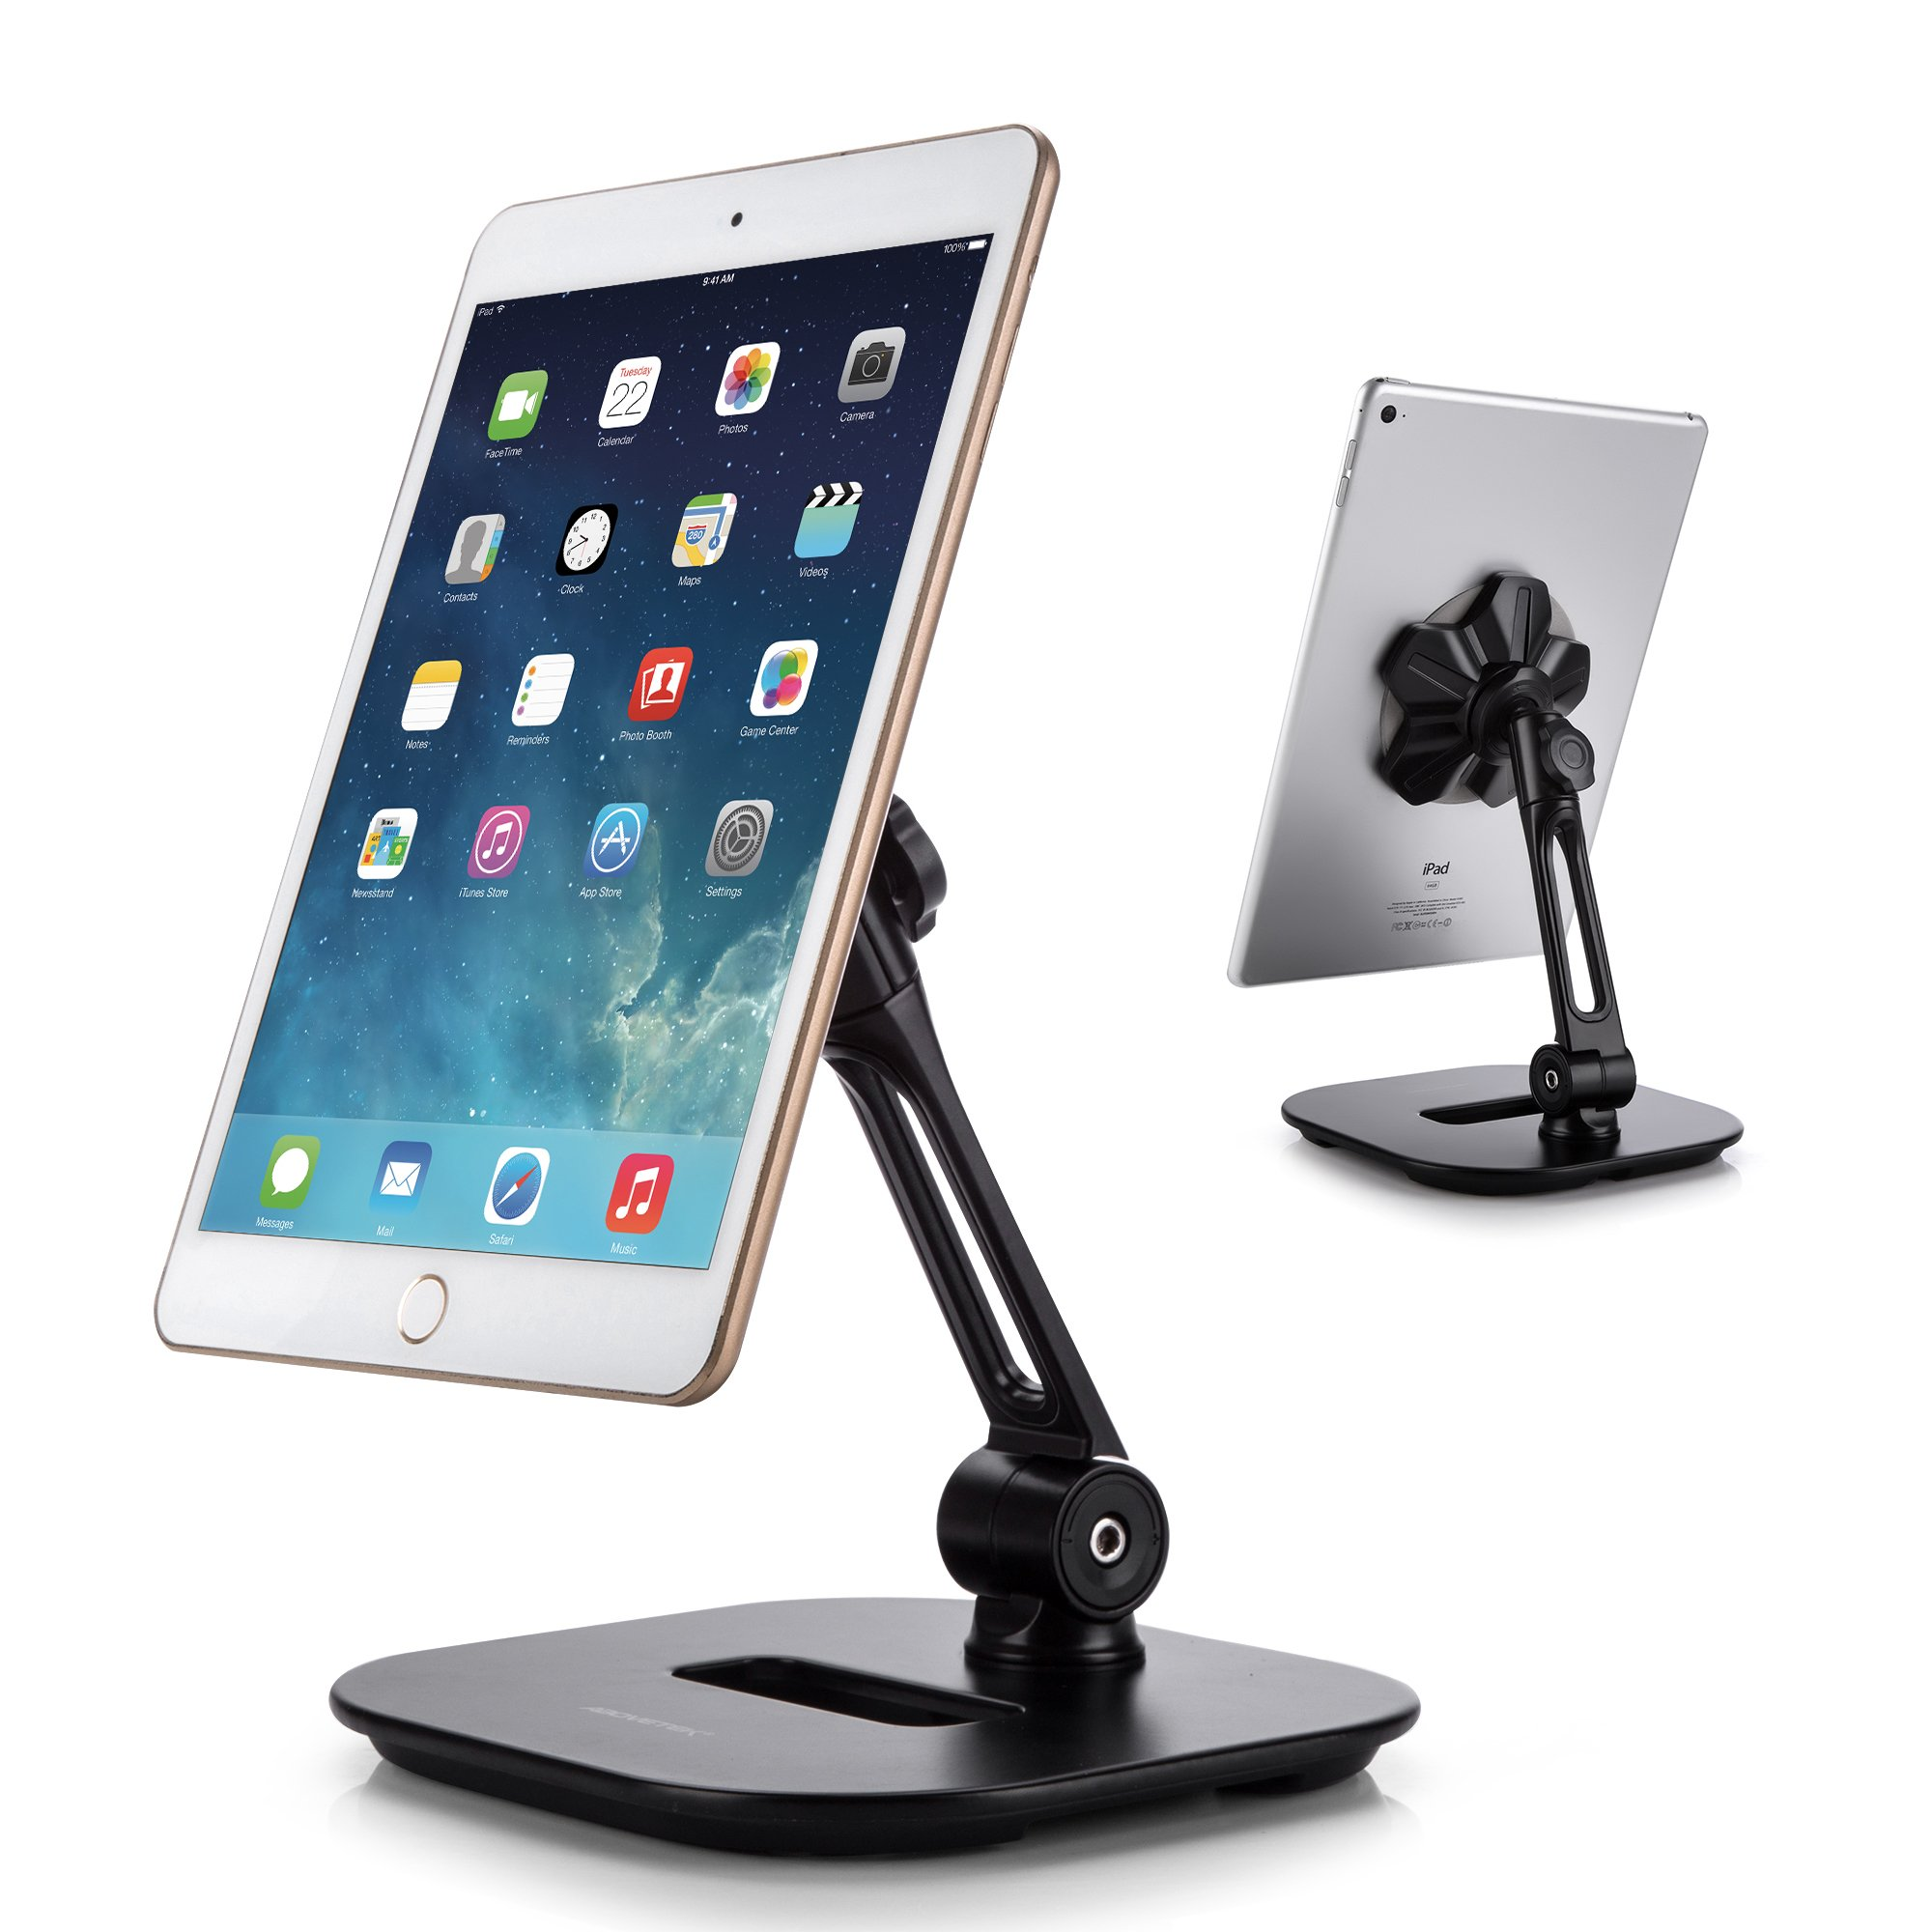 AboveTEK Sleek Magnetic Tablet Stand, Aluminum iPad Cell Phone Stand w/Extra Bonus Metal Disks, 360° Swivel iPhone/iPad Magnet Mount for Kitchen Tabletop Bedside Office Desk Kiosk Reception Display